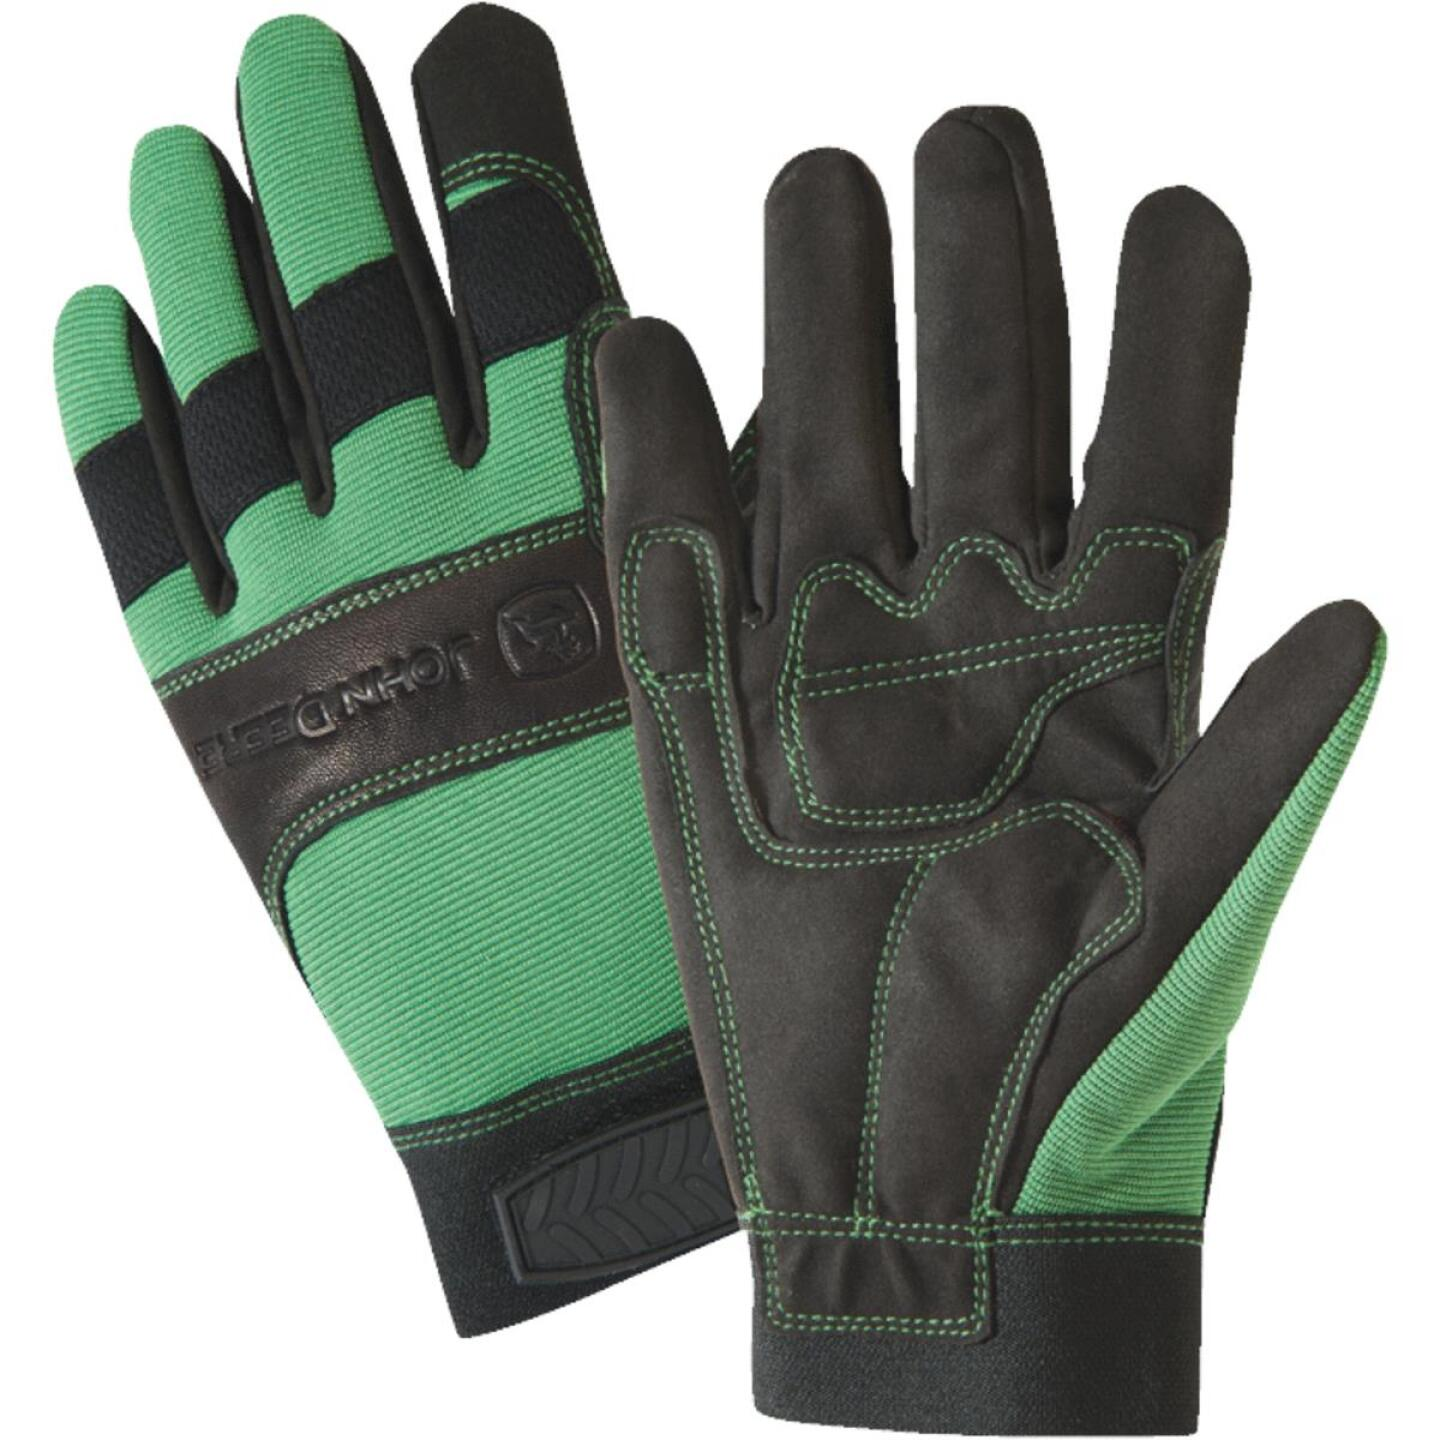 West Chester John Deere Men's XL Synthetic Leather Winter Work Glove Image 1